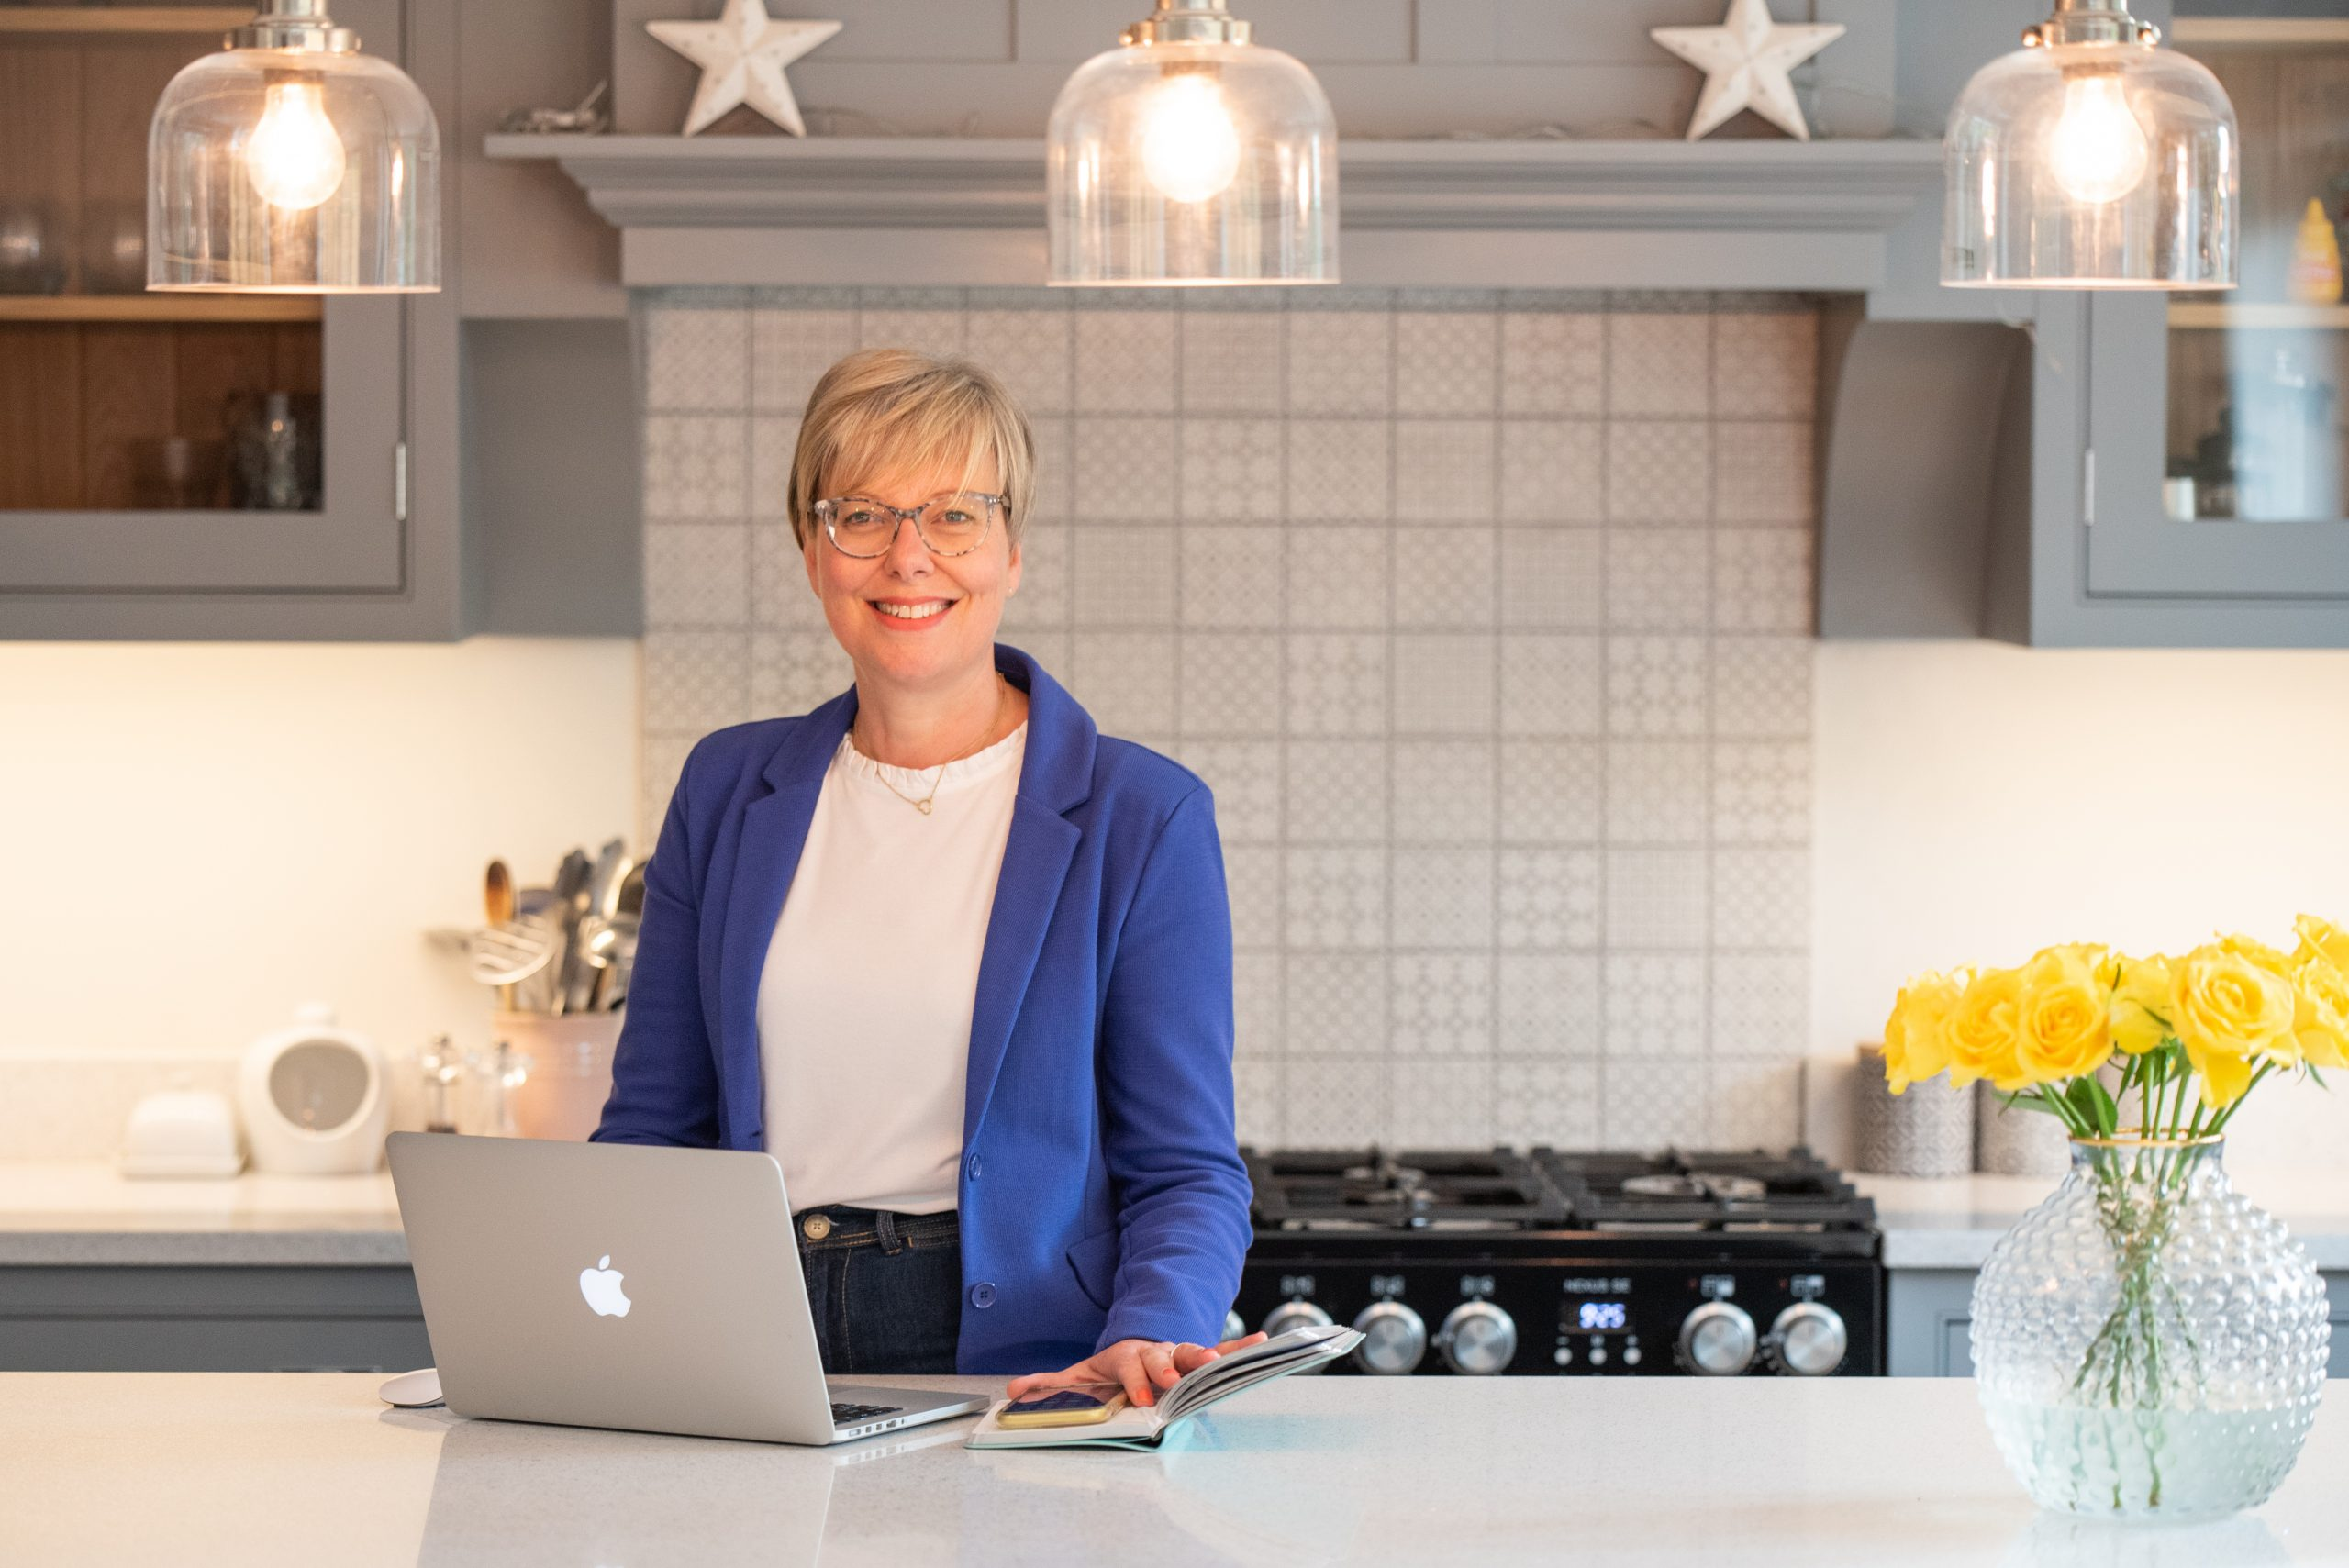 blonde lady in kitchen with laptop